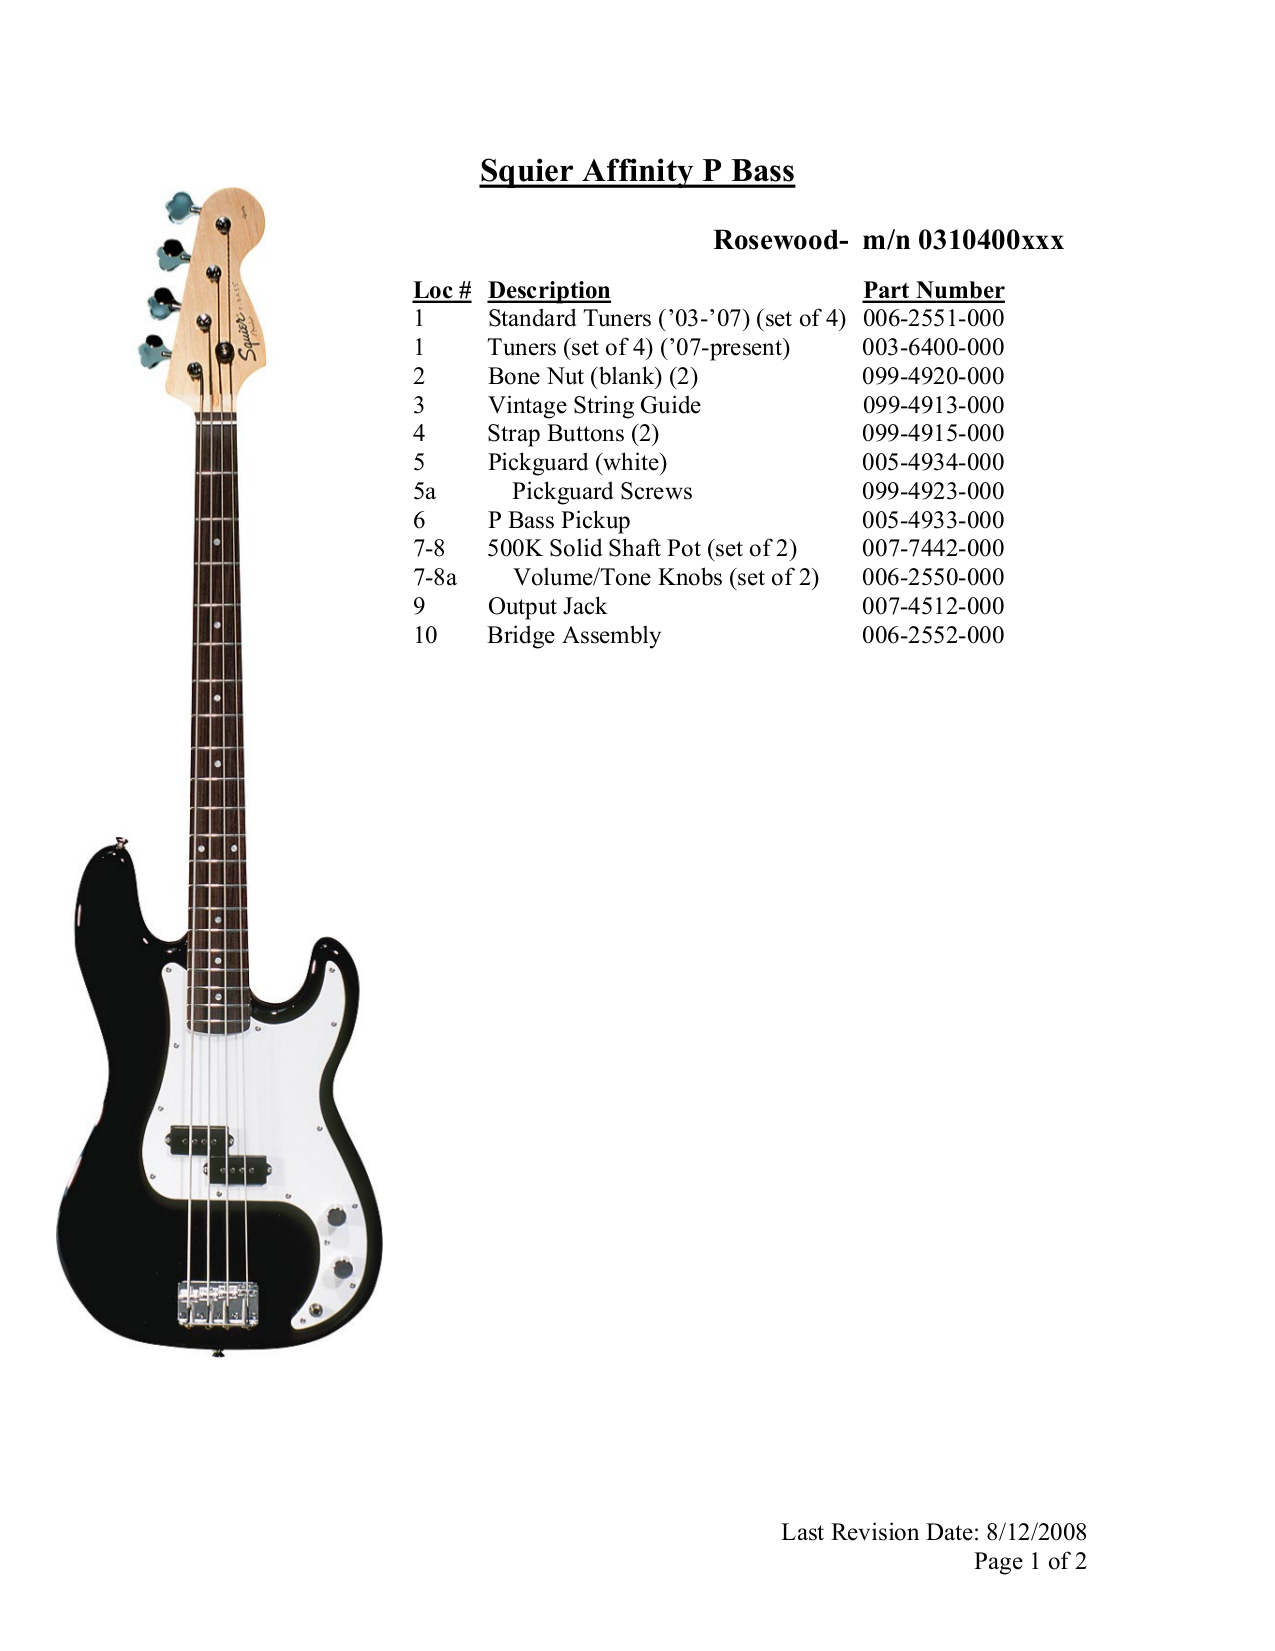 pdf for Squier Guitar Affinity P Bass manual